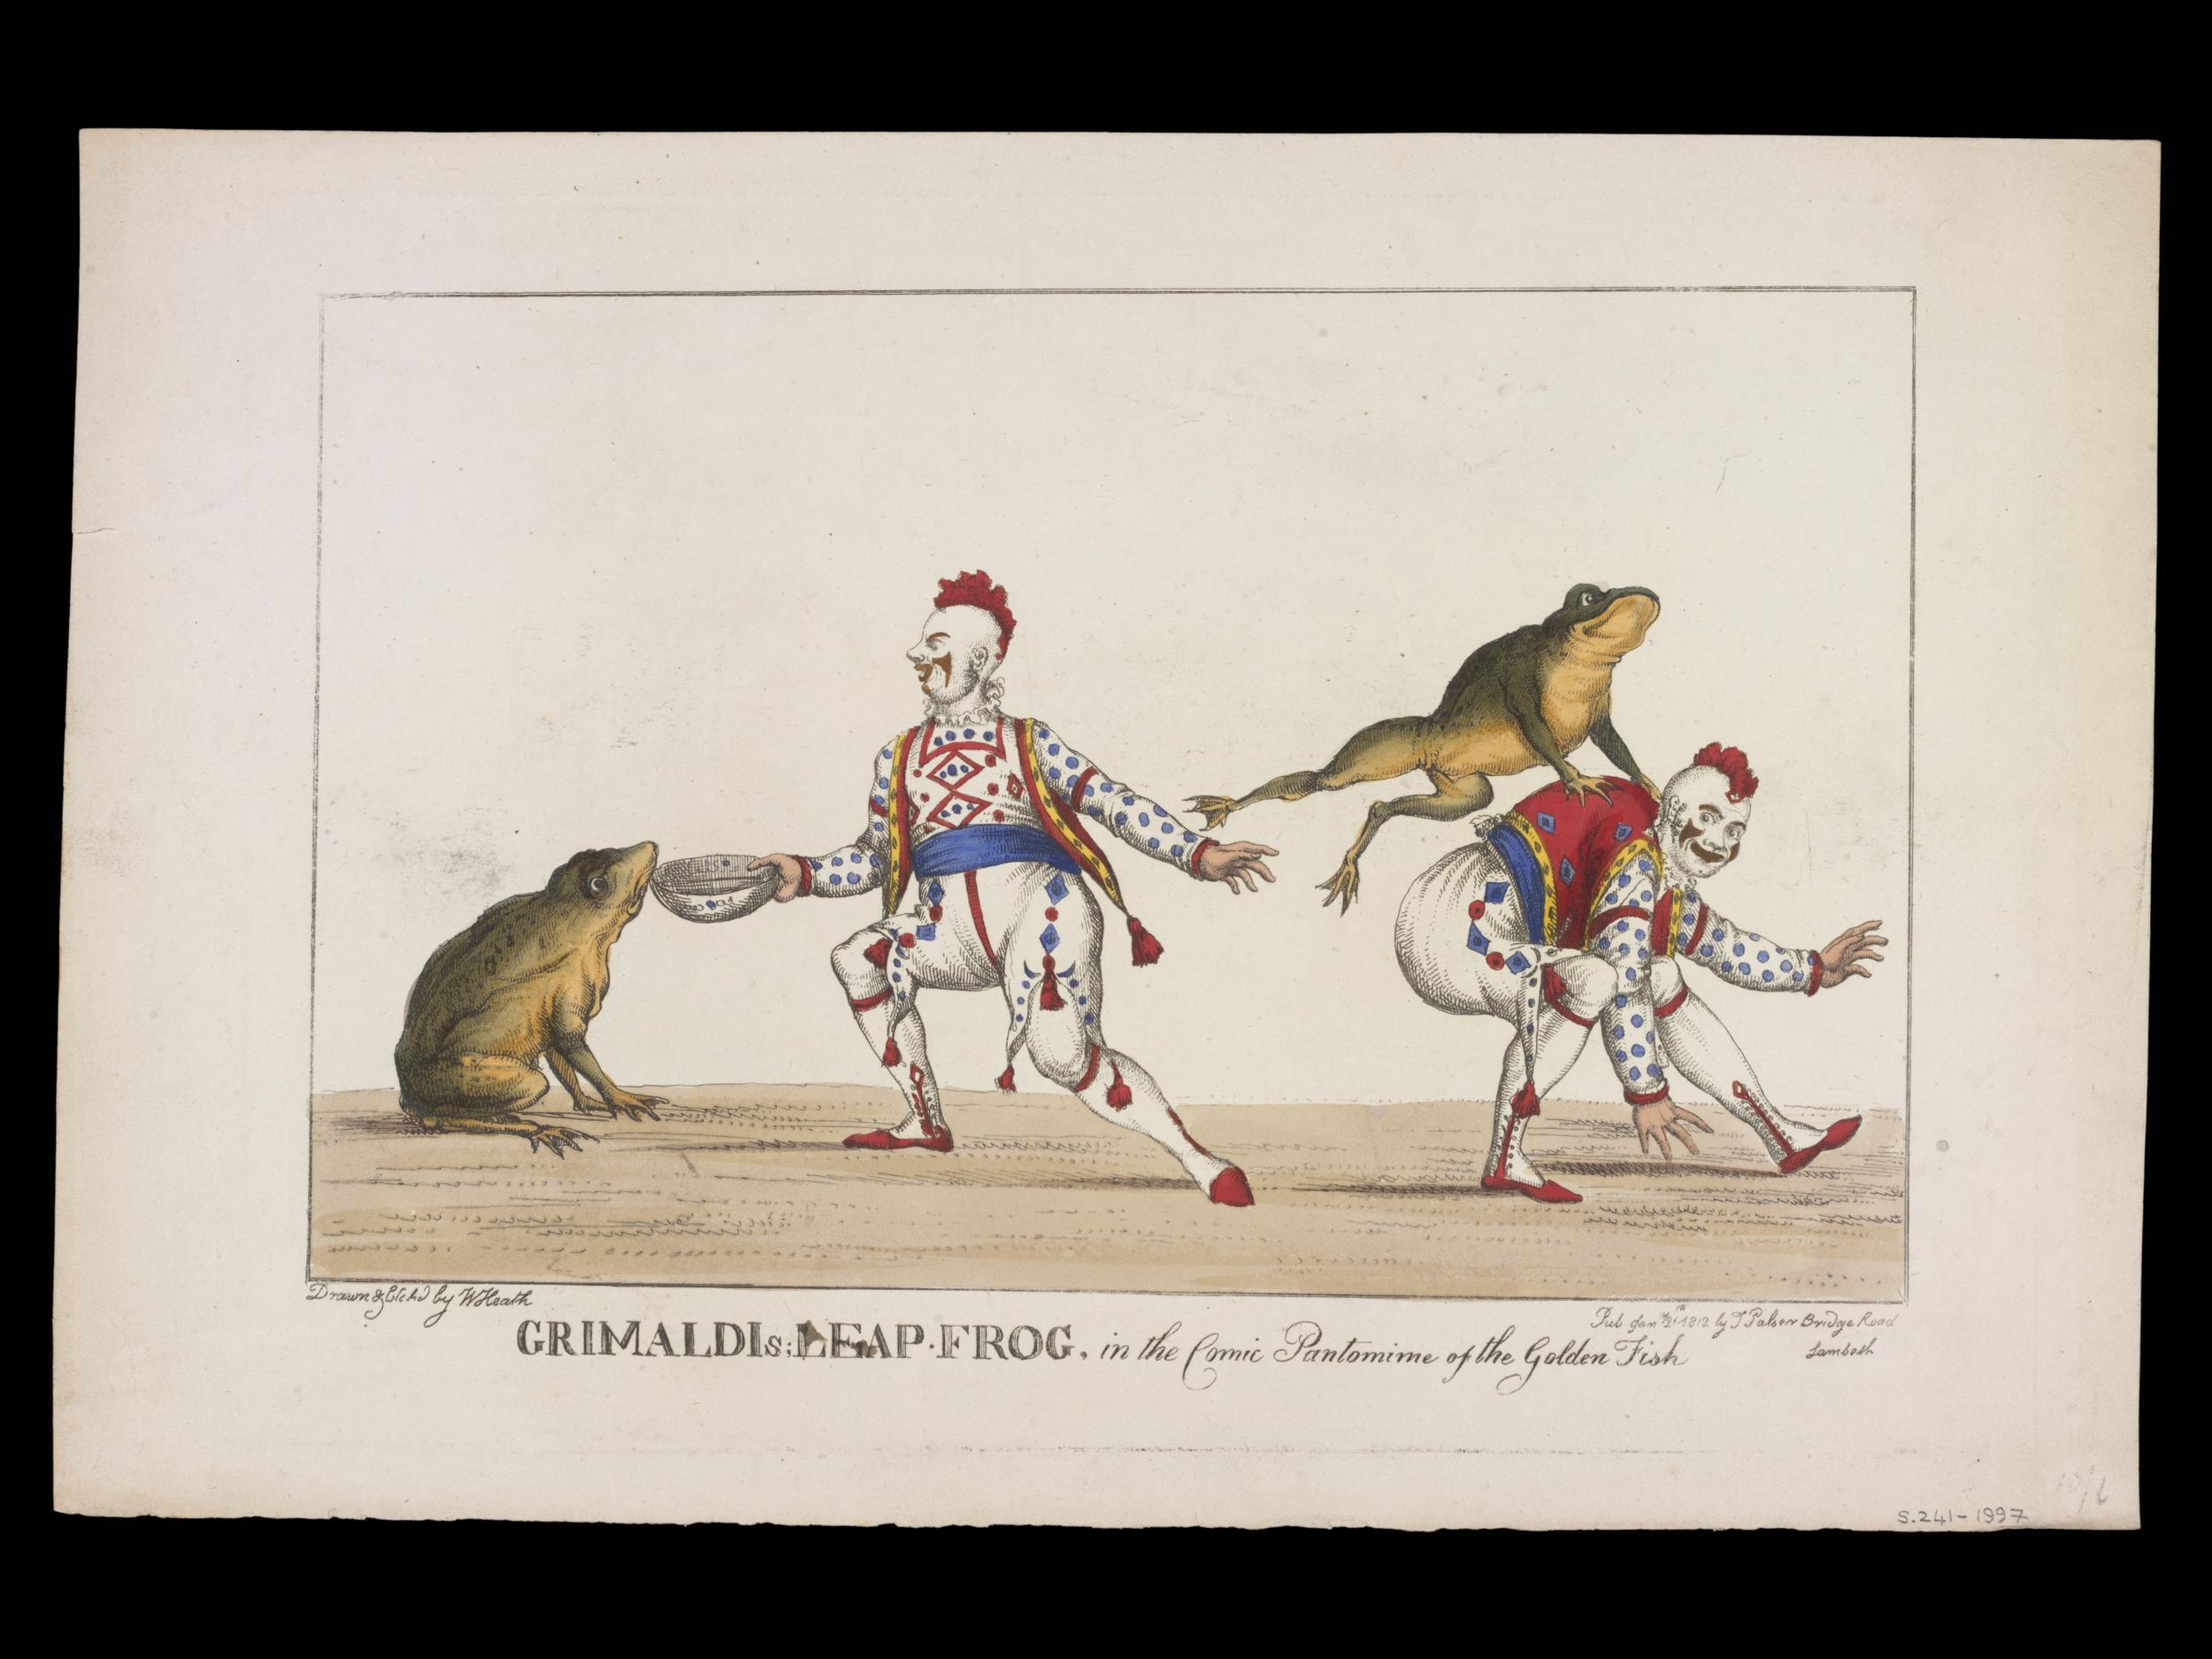 Grimaldi's Leap Frog in the Comic Pantomime of the Golden Fish, stampa, 1812 © Victoria and Albert Museum, London